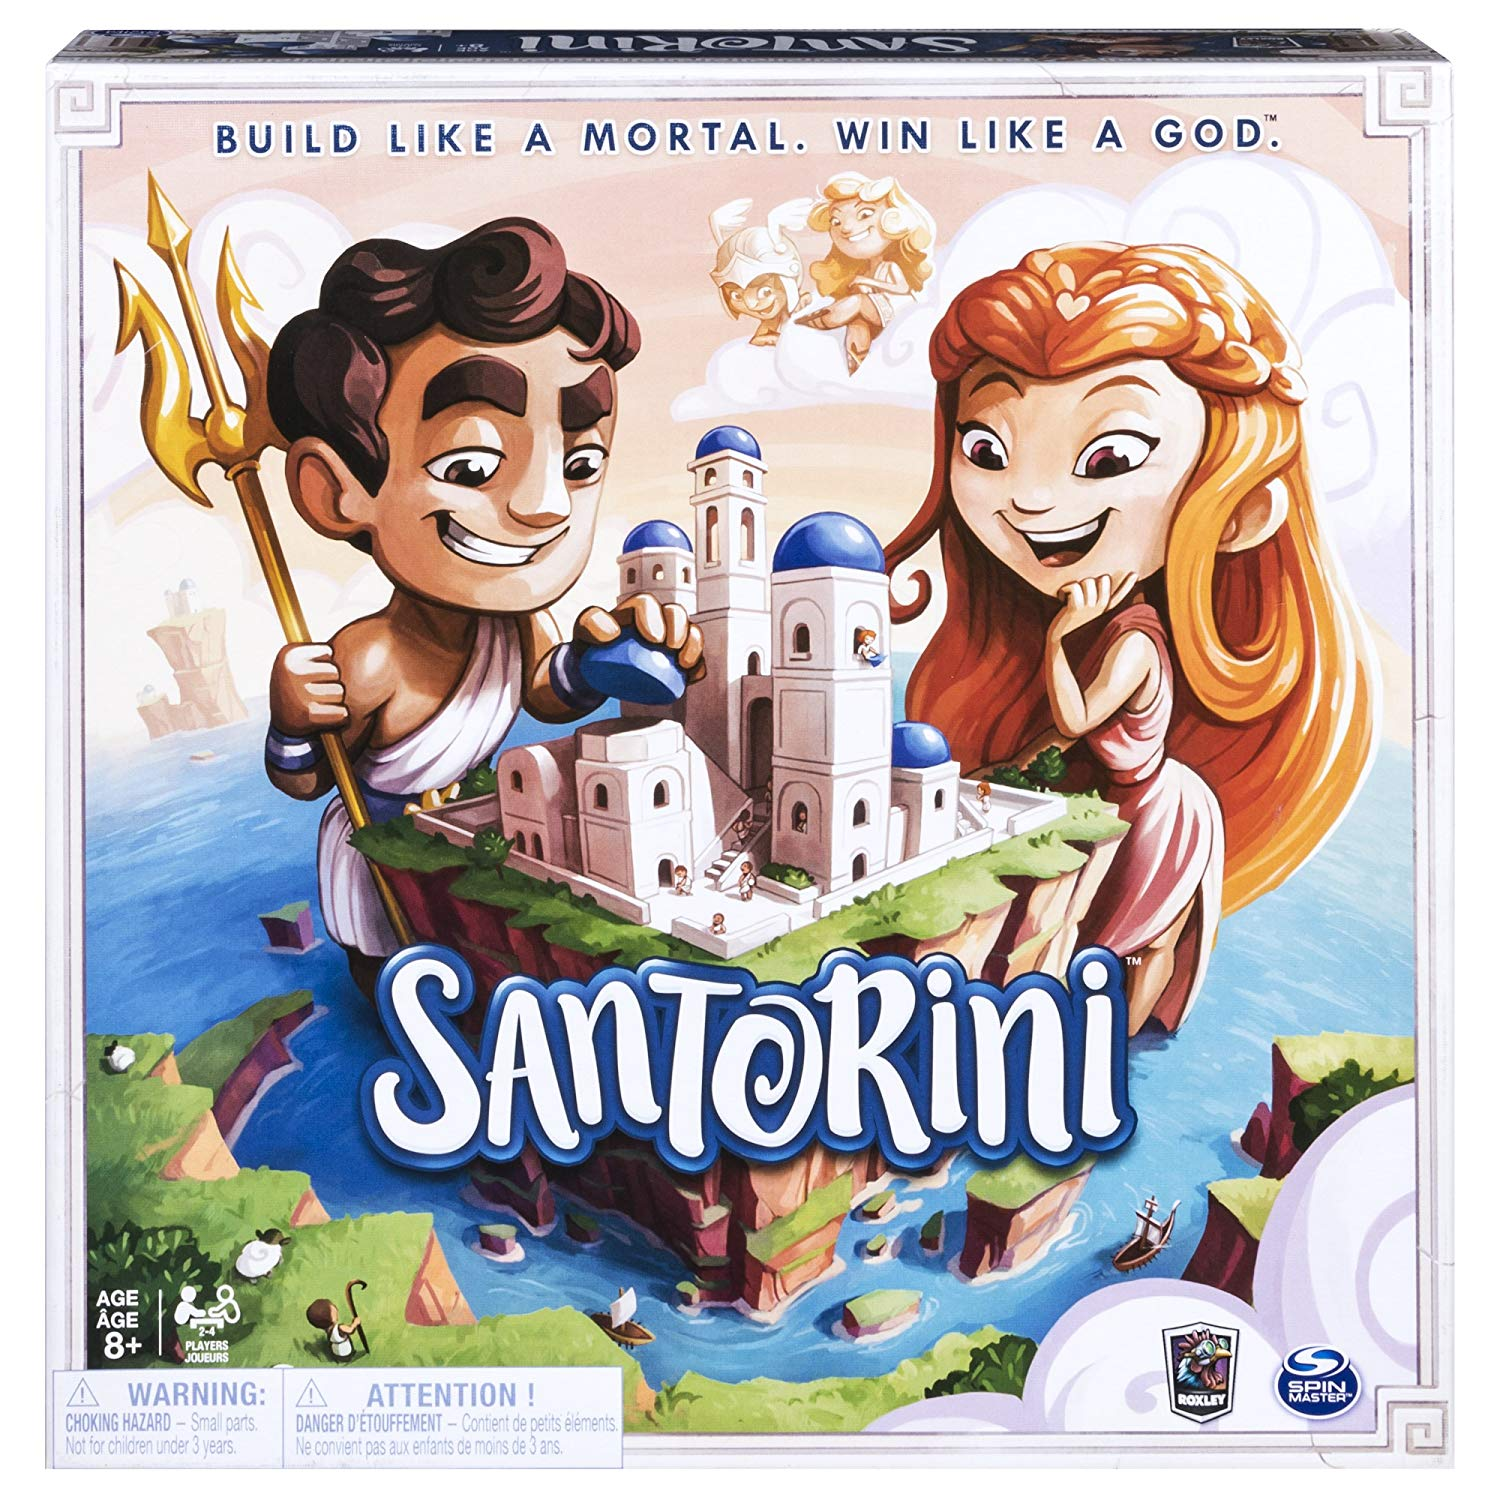 santorini best abstract board games for chess lovers.jpg